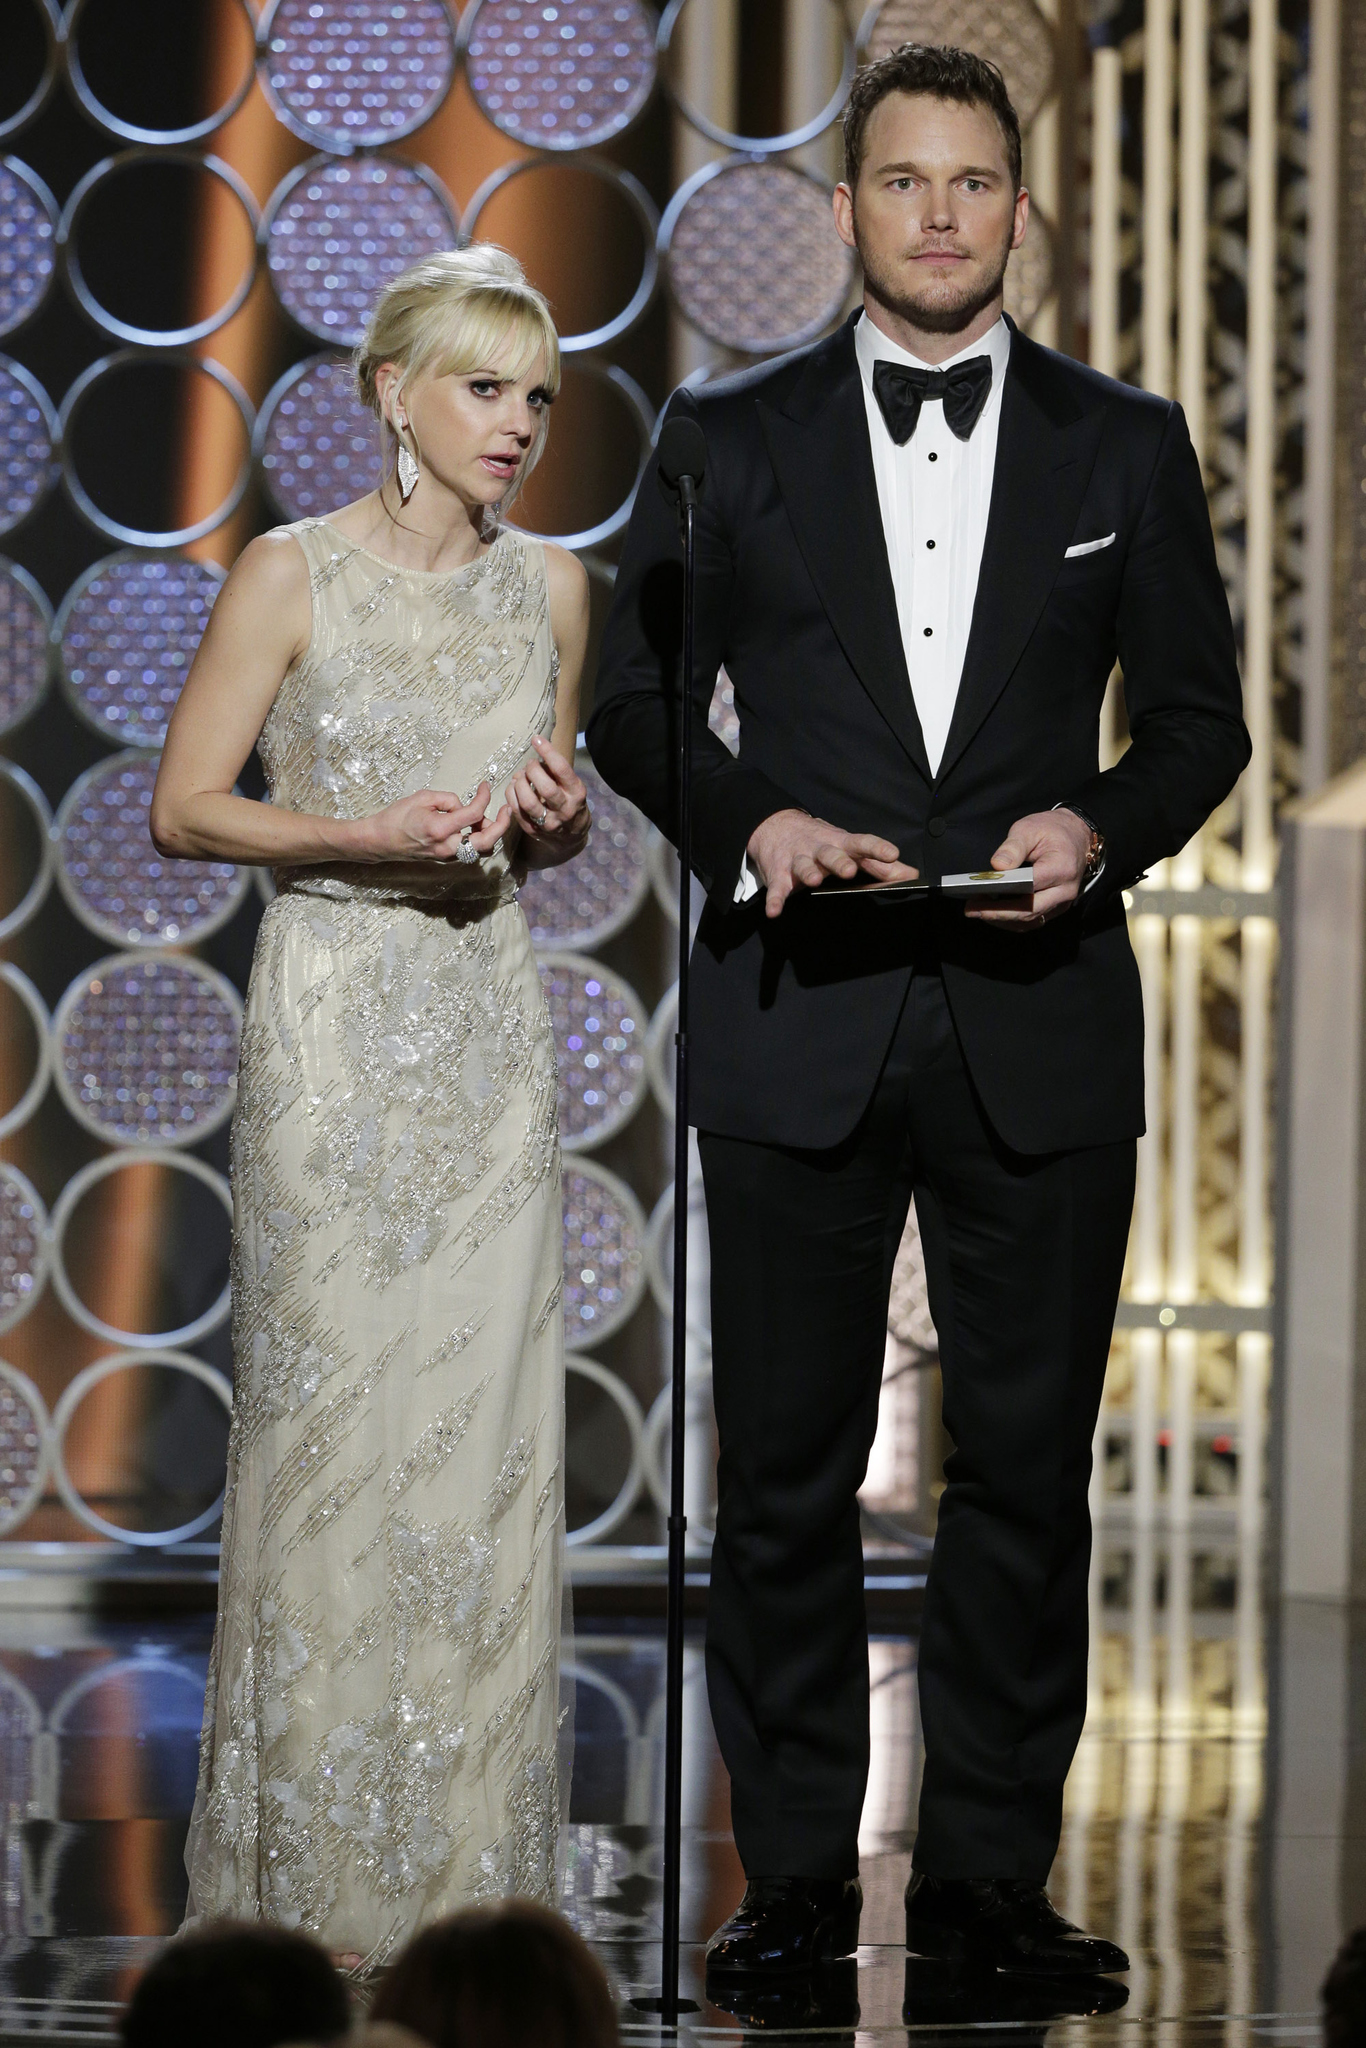 Anna Faris and Chris Pratt at event of 72nd Golden Globe Awards (2015) photo #489103